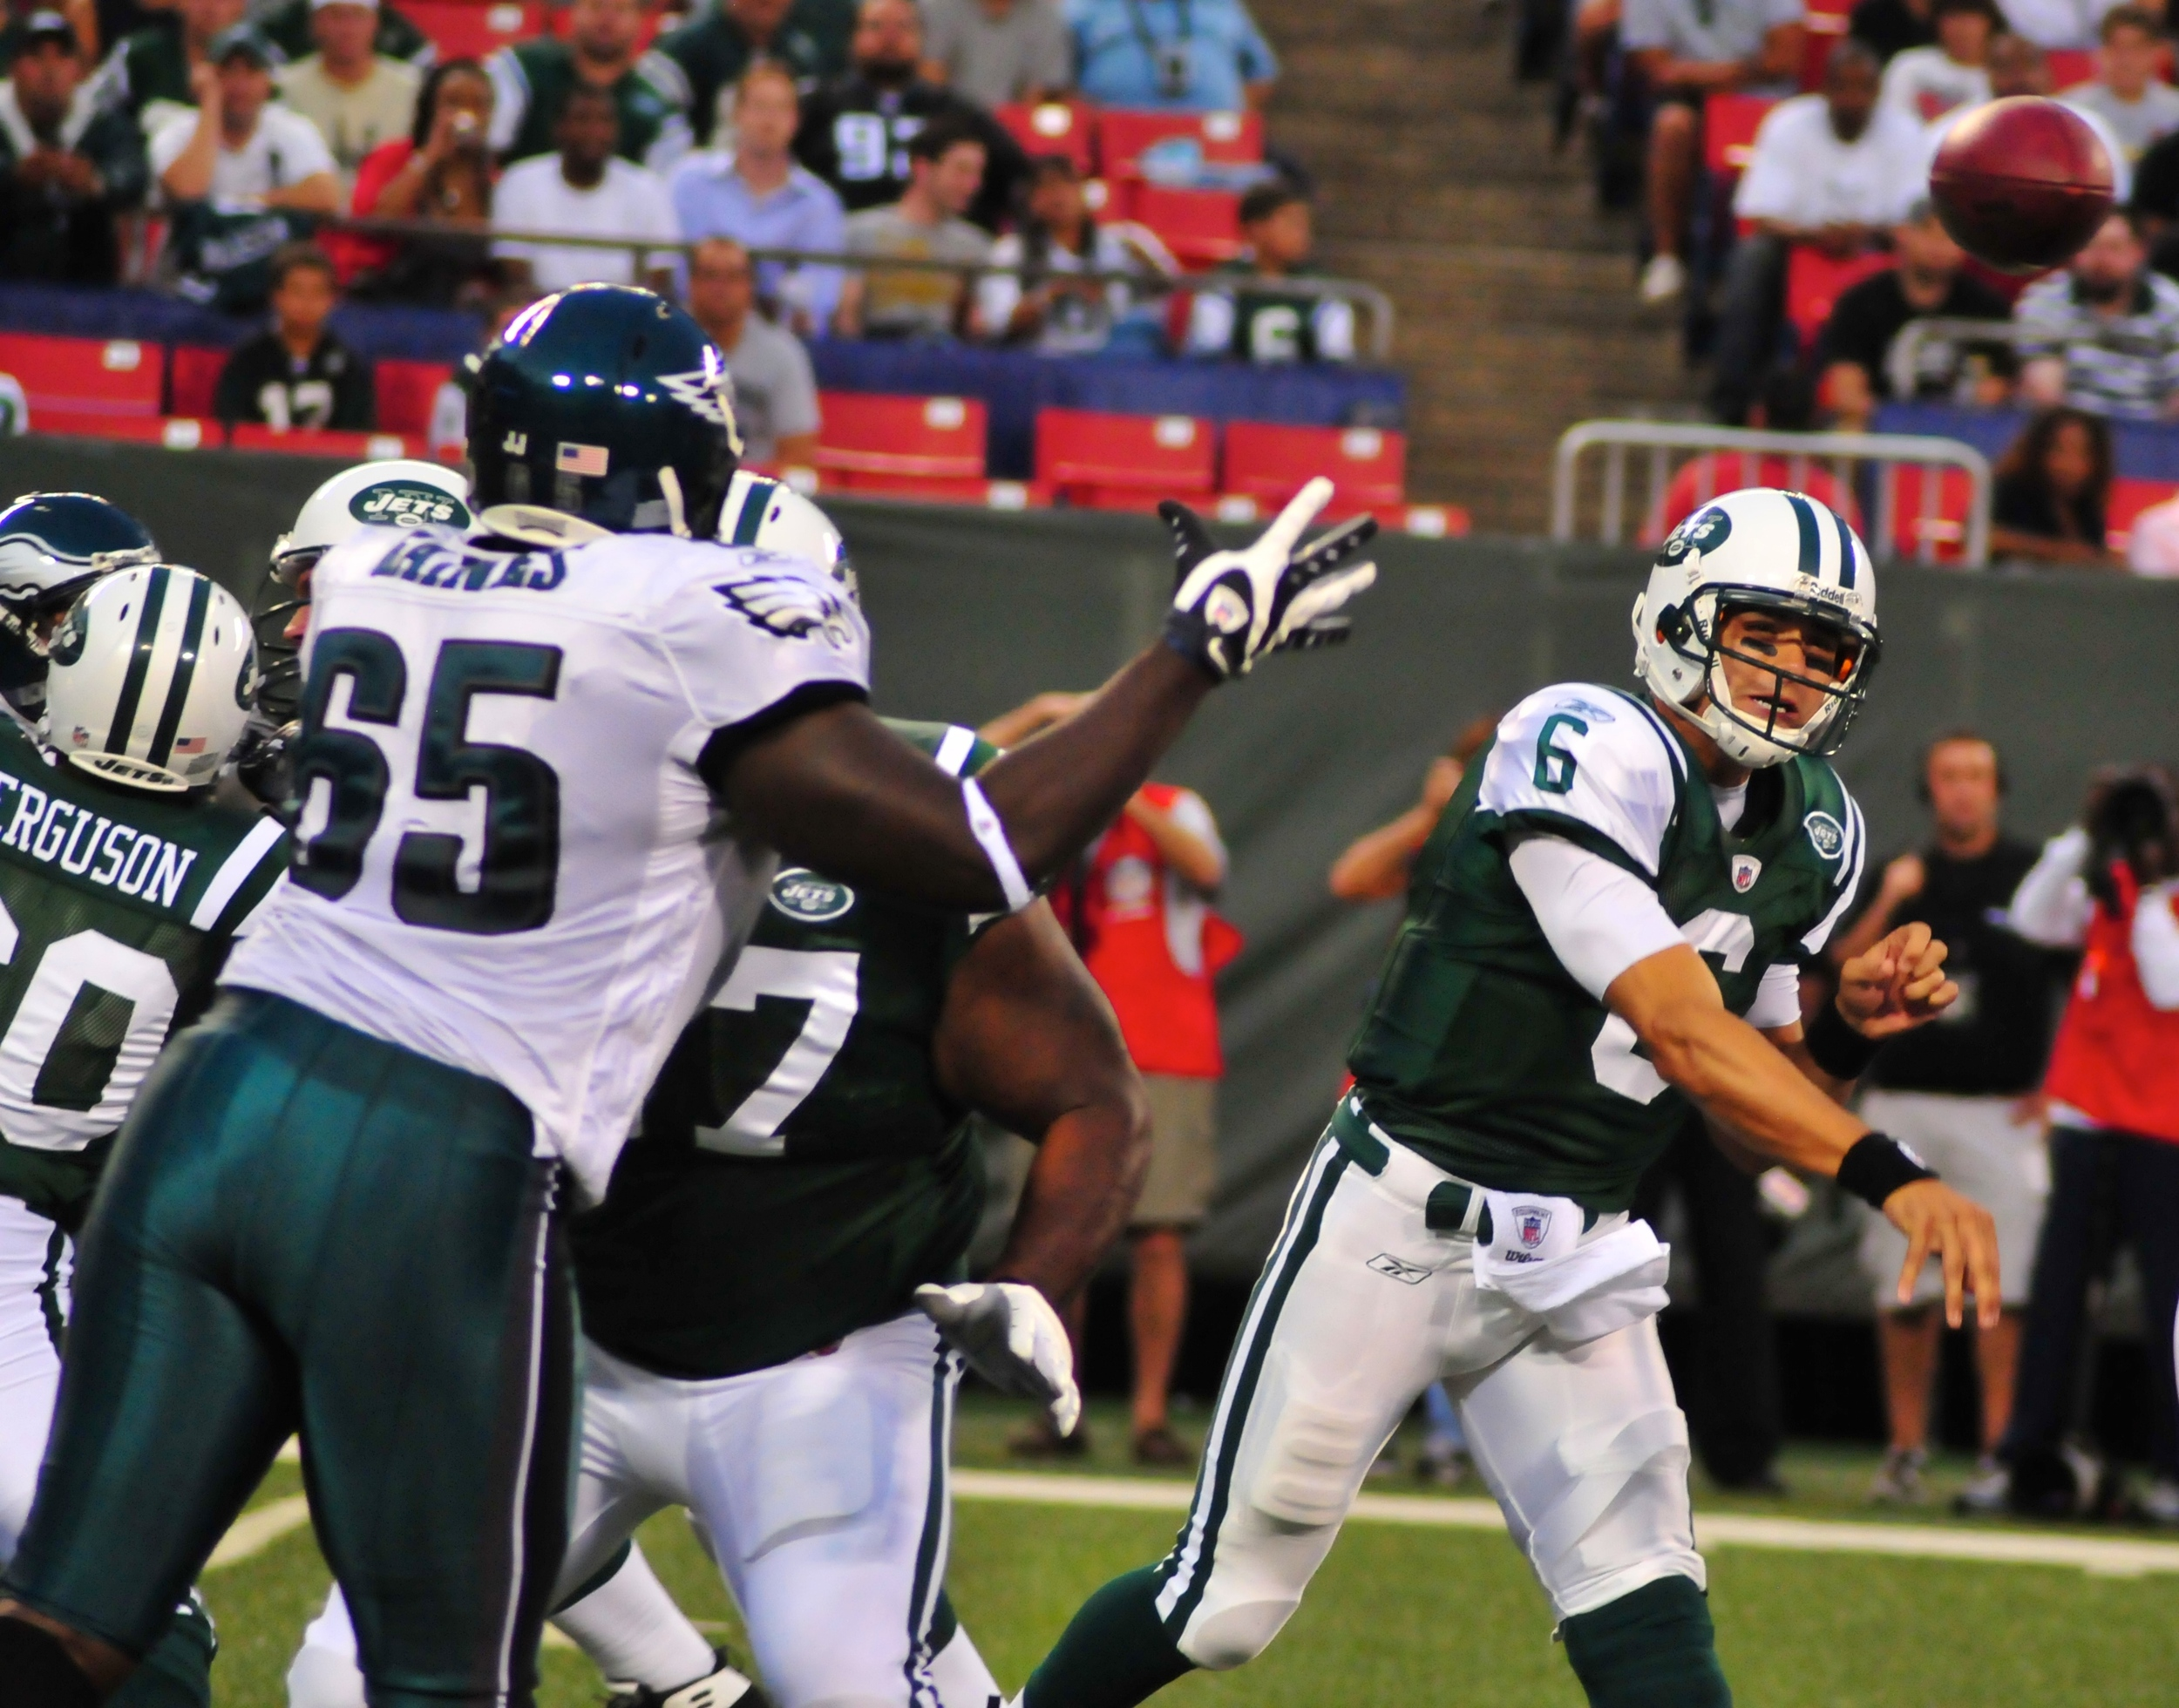 Mark Sanchez, former New York Jets' quarterback, throws a pass in 2009 against the Philadelphia Eagles, whose erstwhile QB, Michael Vick, is now with the Jets.  Ah, the ironies. Photograph by Ed Yourdon.